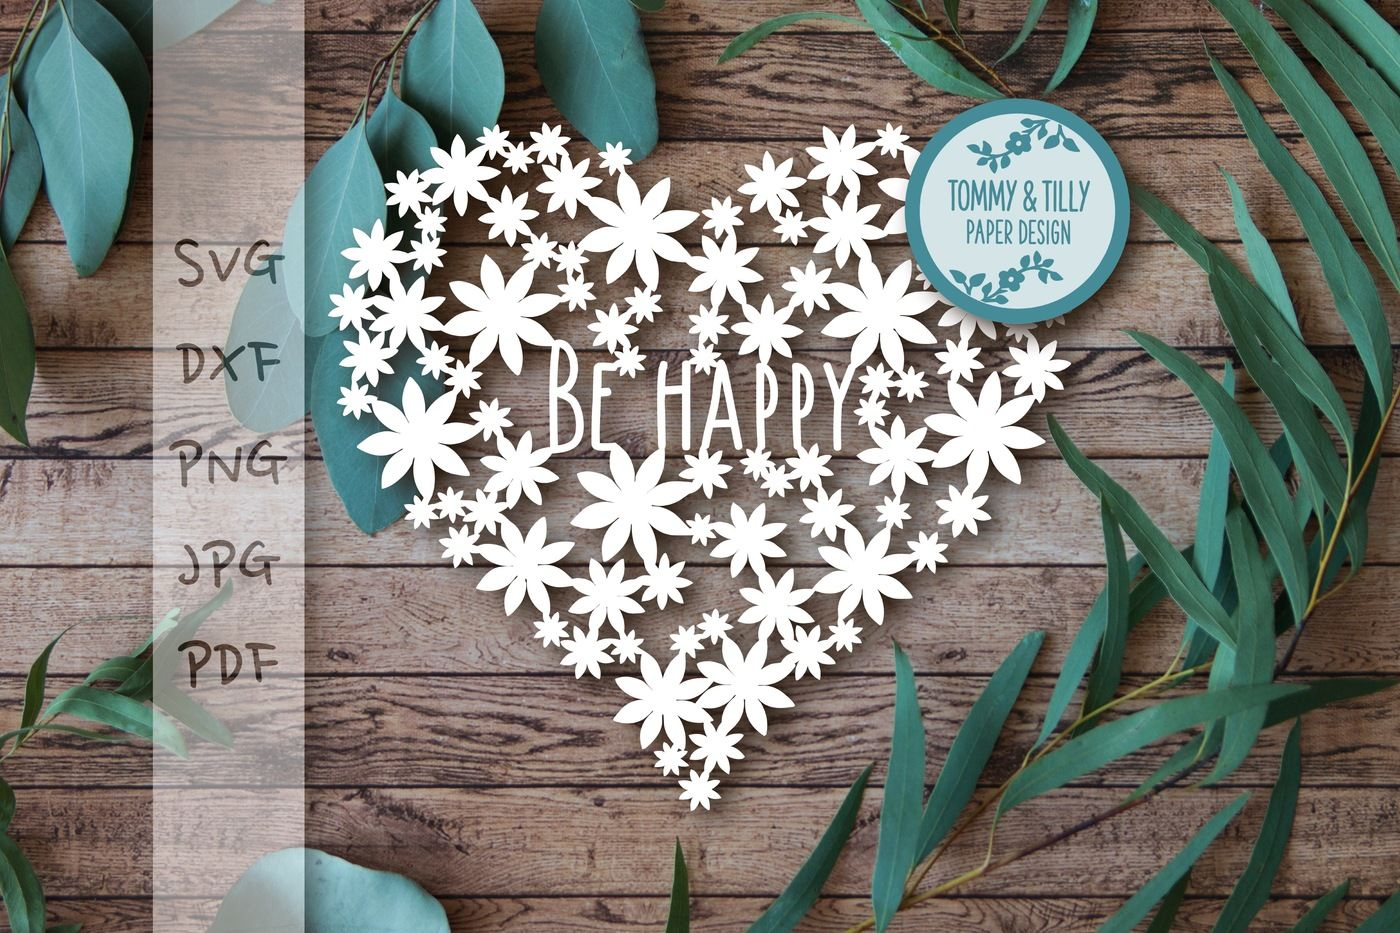 Be Happy Daisy Heart Svg Dxf Png Pdf Jpg By Tommy And Tilly Design